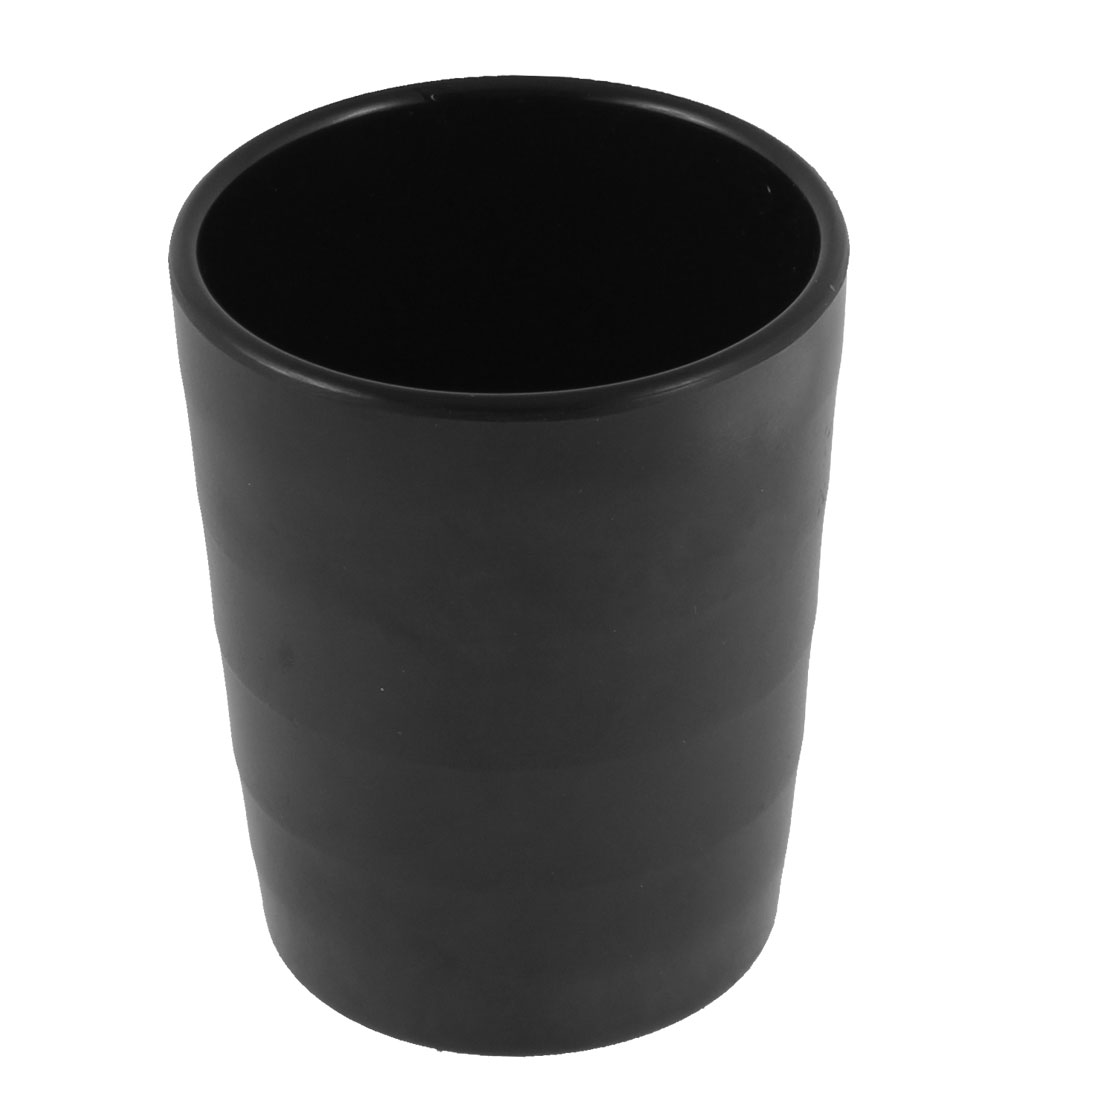 Home Plastic Tea Water Milk Drinking Cup Mug Black